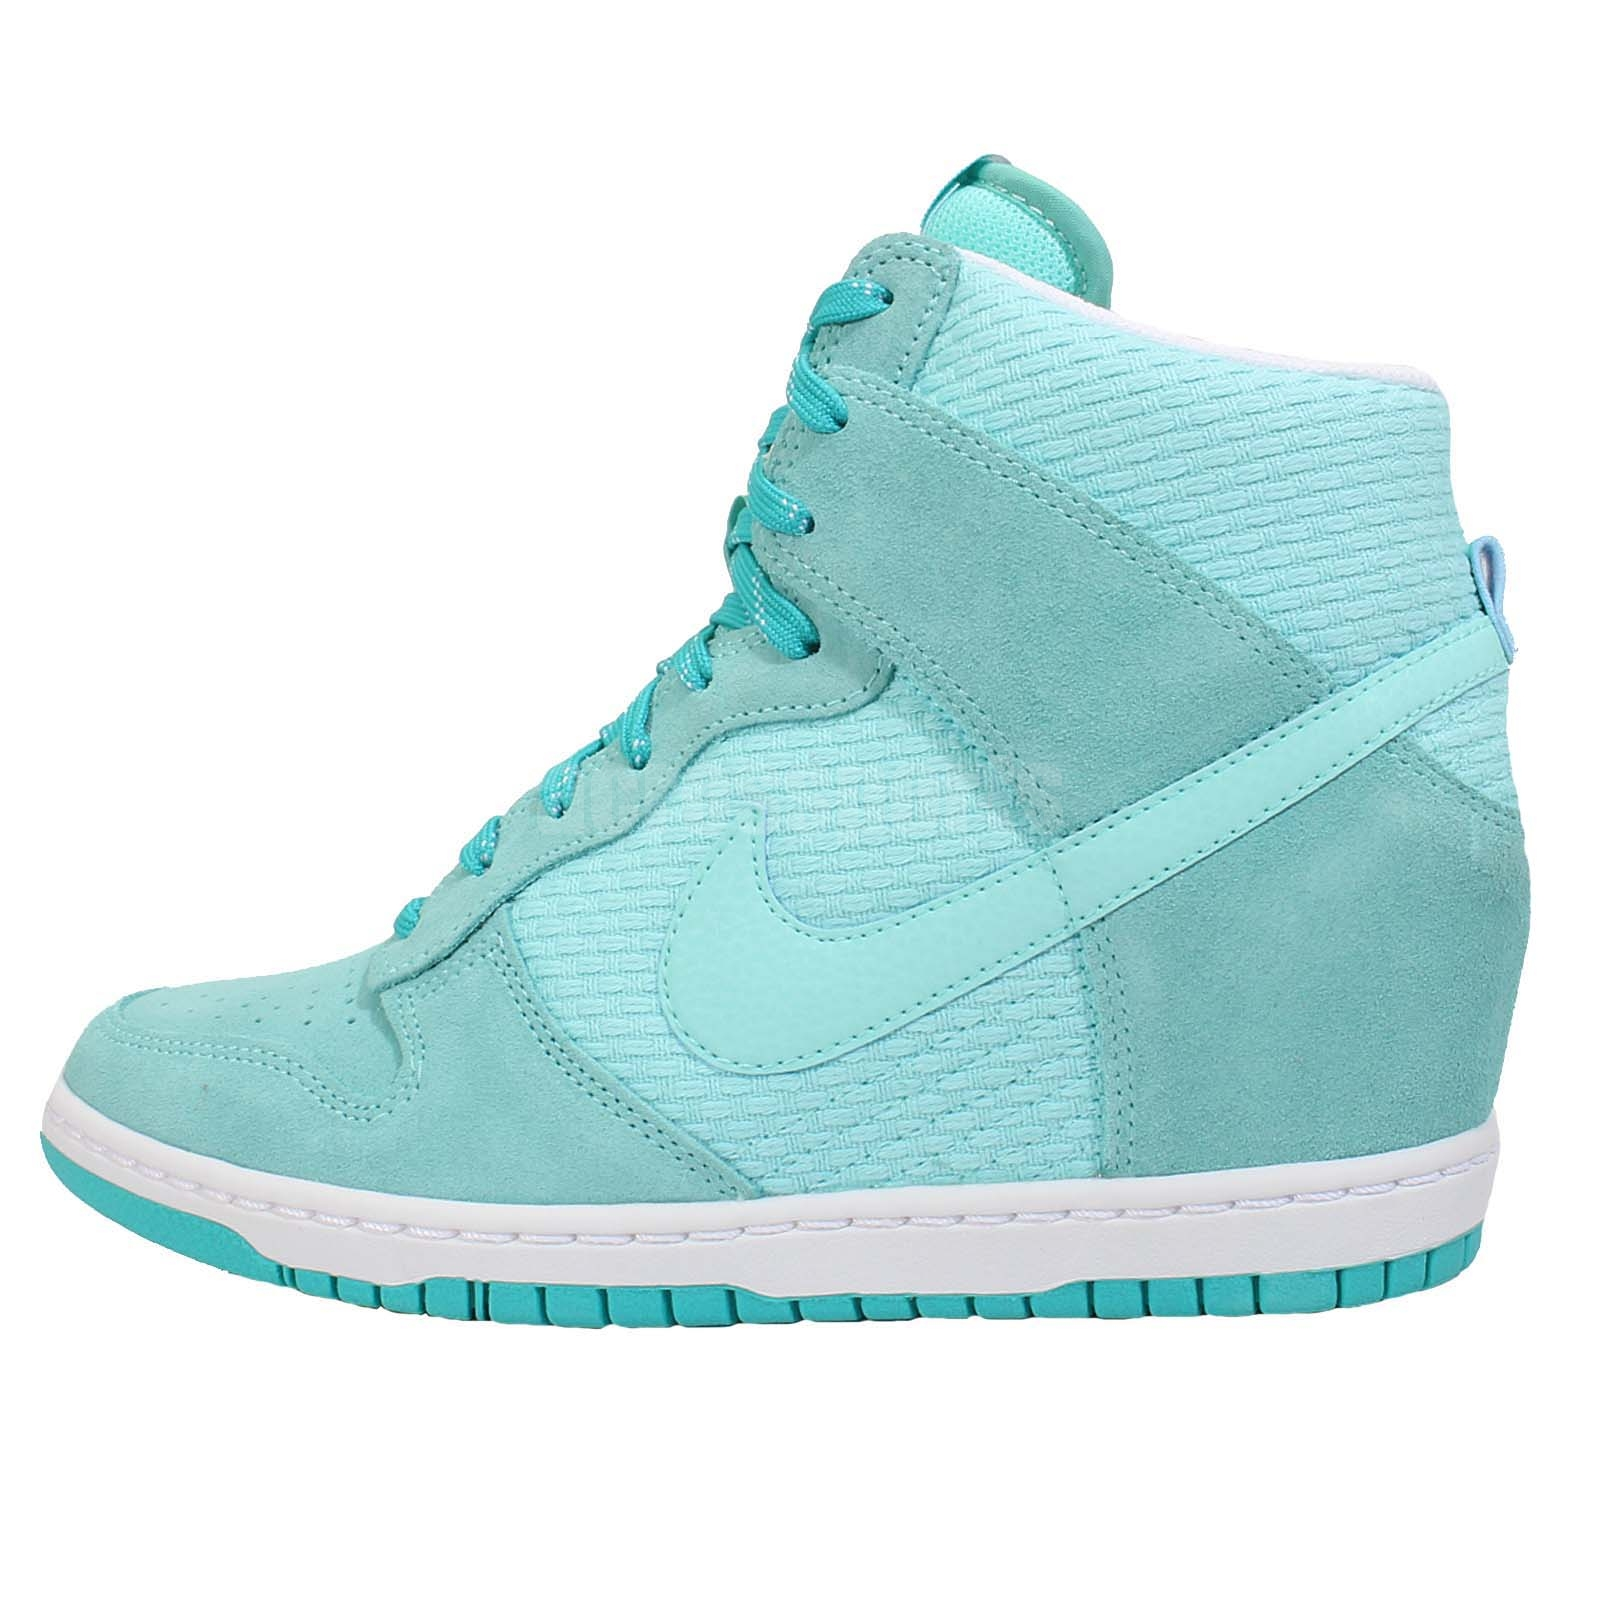 Cool Nike Running Shoe In Blue Teal White Black  Lyst